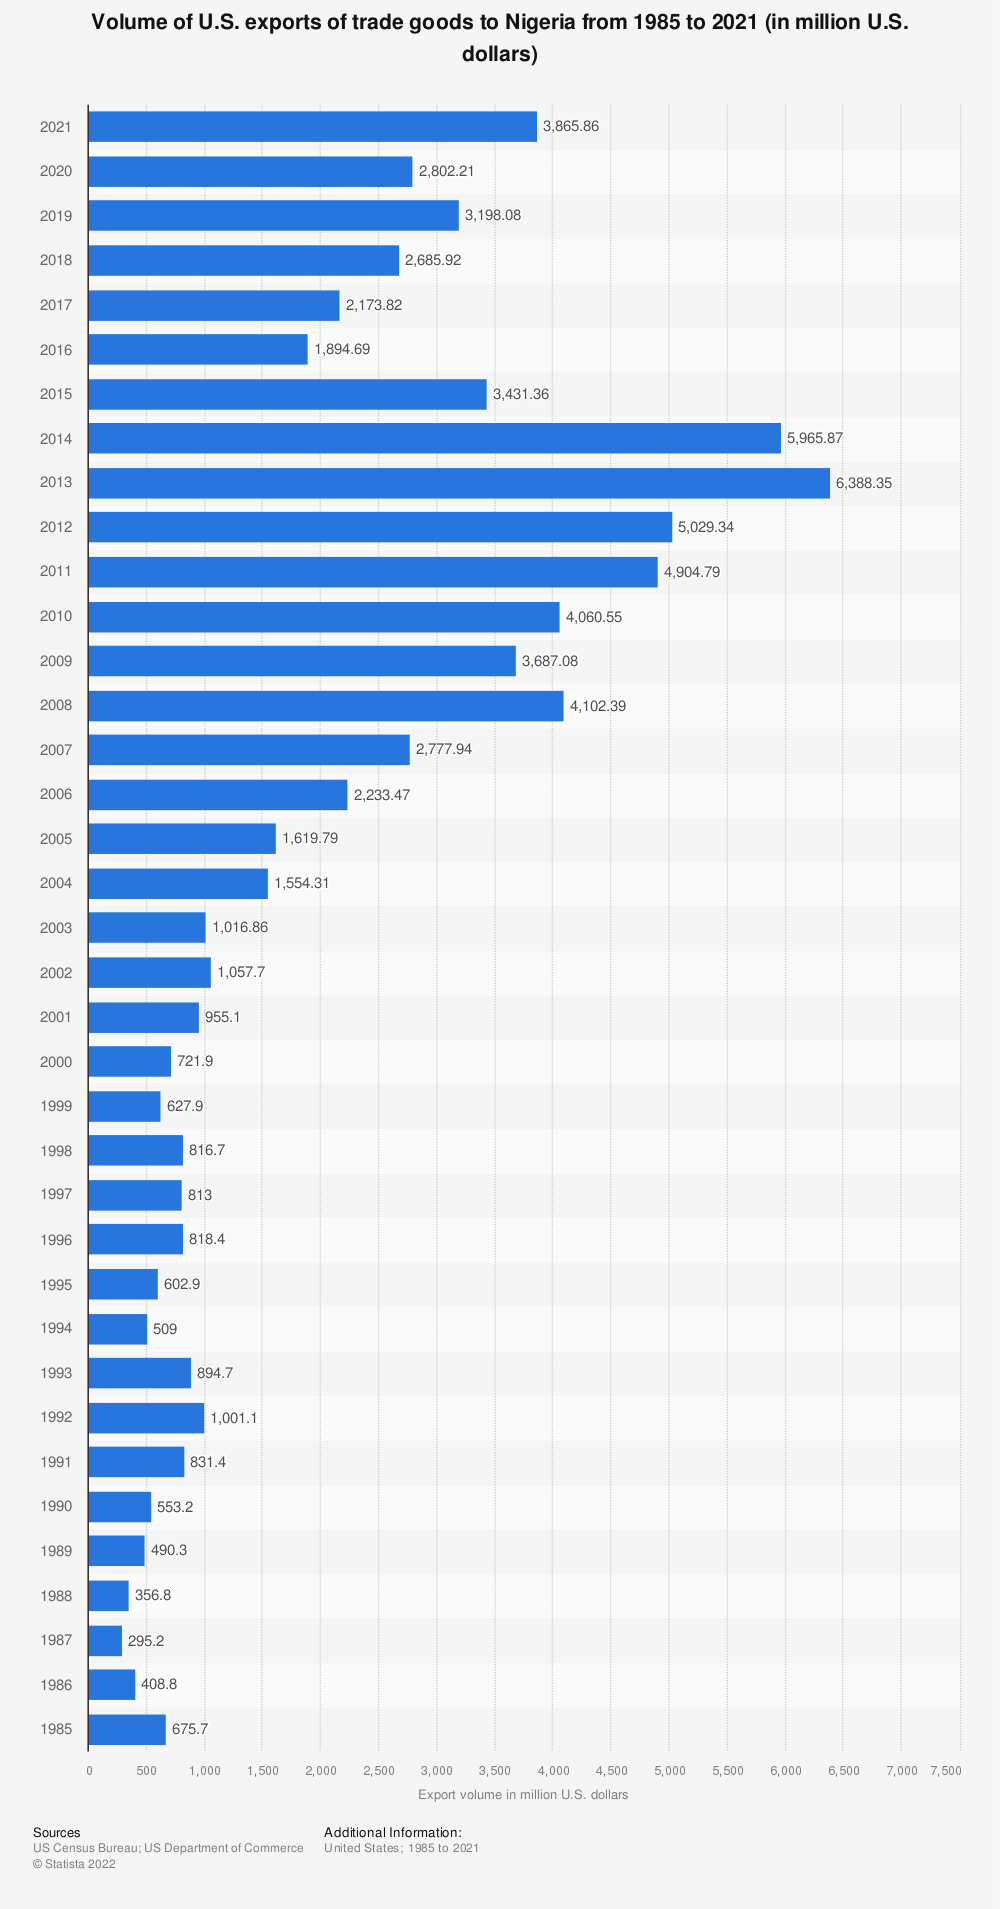 Statistic: Volume of U.S. exports of trade goods to Nigeria from 1985 to 2018 (in million U.S. dollars) | Statista